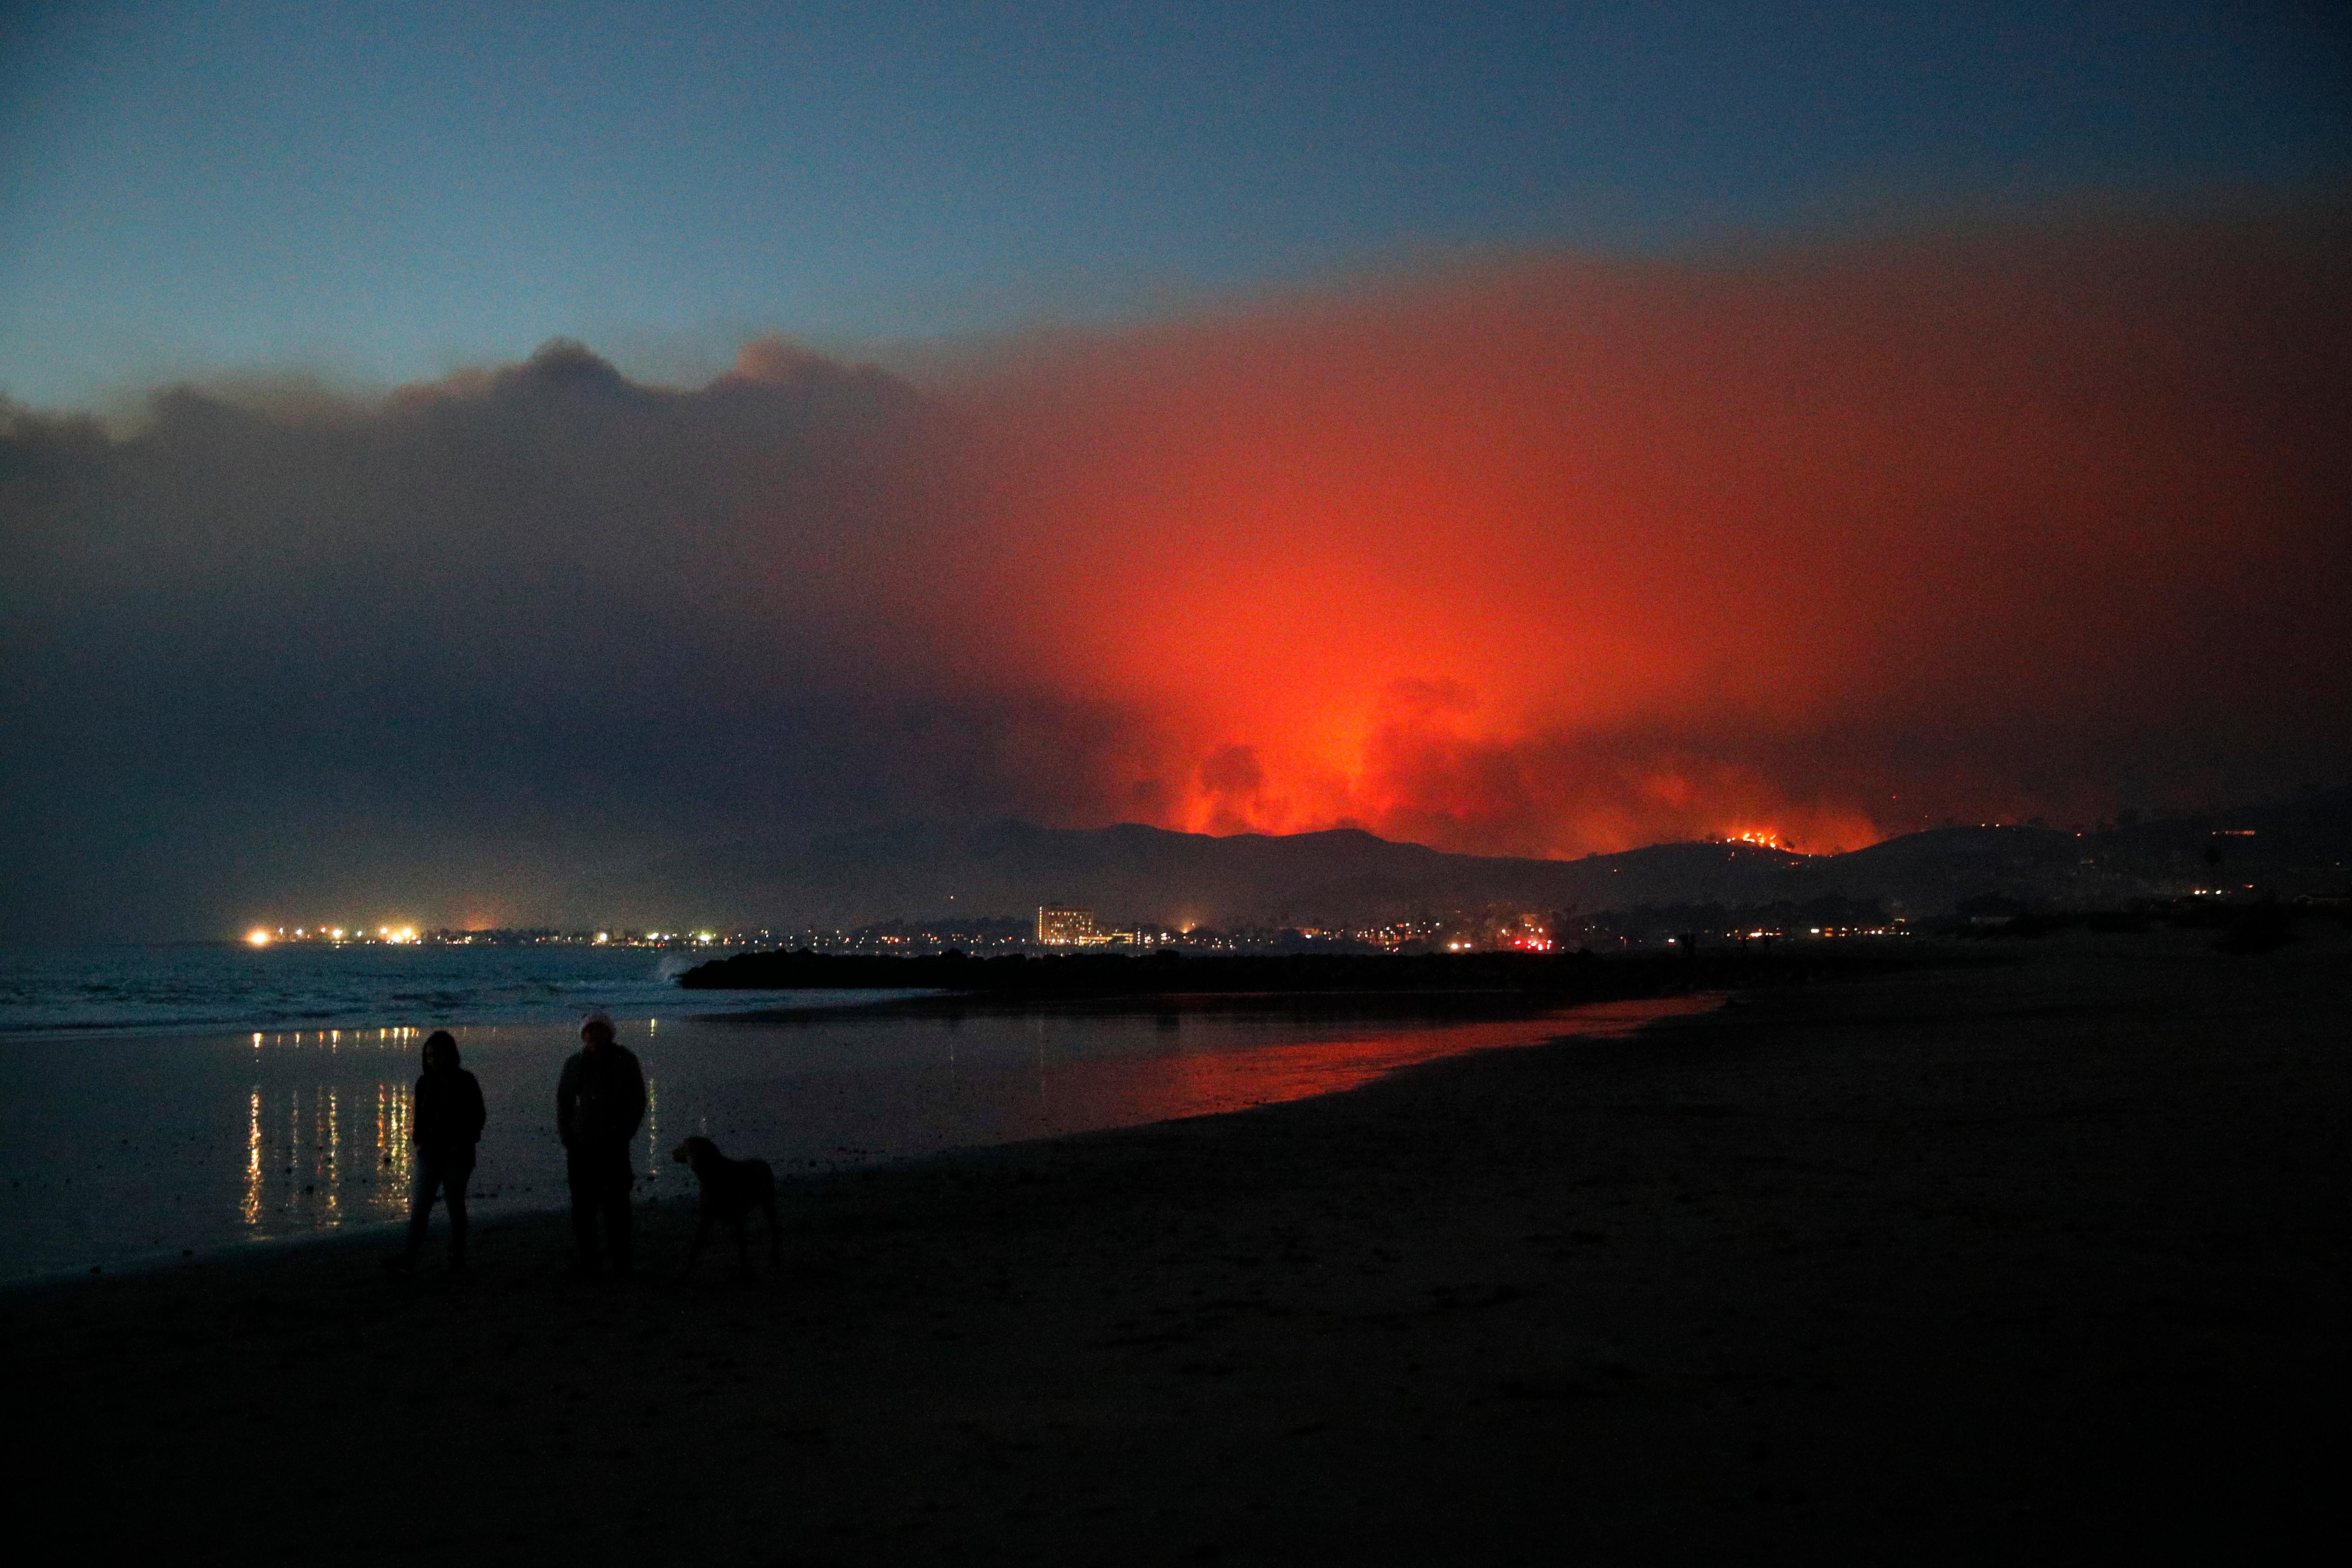 Two people walk along the beach with a dog as a wildfire burns in distance Tuesday, Dec. 5, 2017, in Ventura, Calif. Raked by ferocious Santa Ana winds, explosive wildfires northwest of Los Angeles and in the city's foothills burned a psychiatric hospital and scores of homes Tuesday and forced the evacuation of tens of thousands of people. (AP Photo/Jae C. Hong)